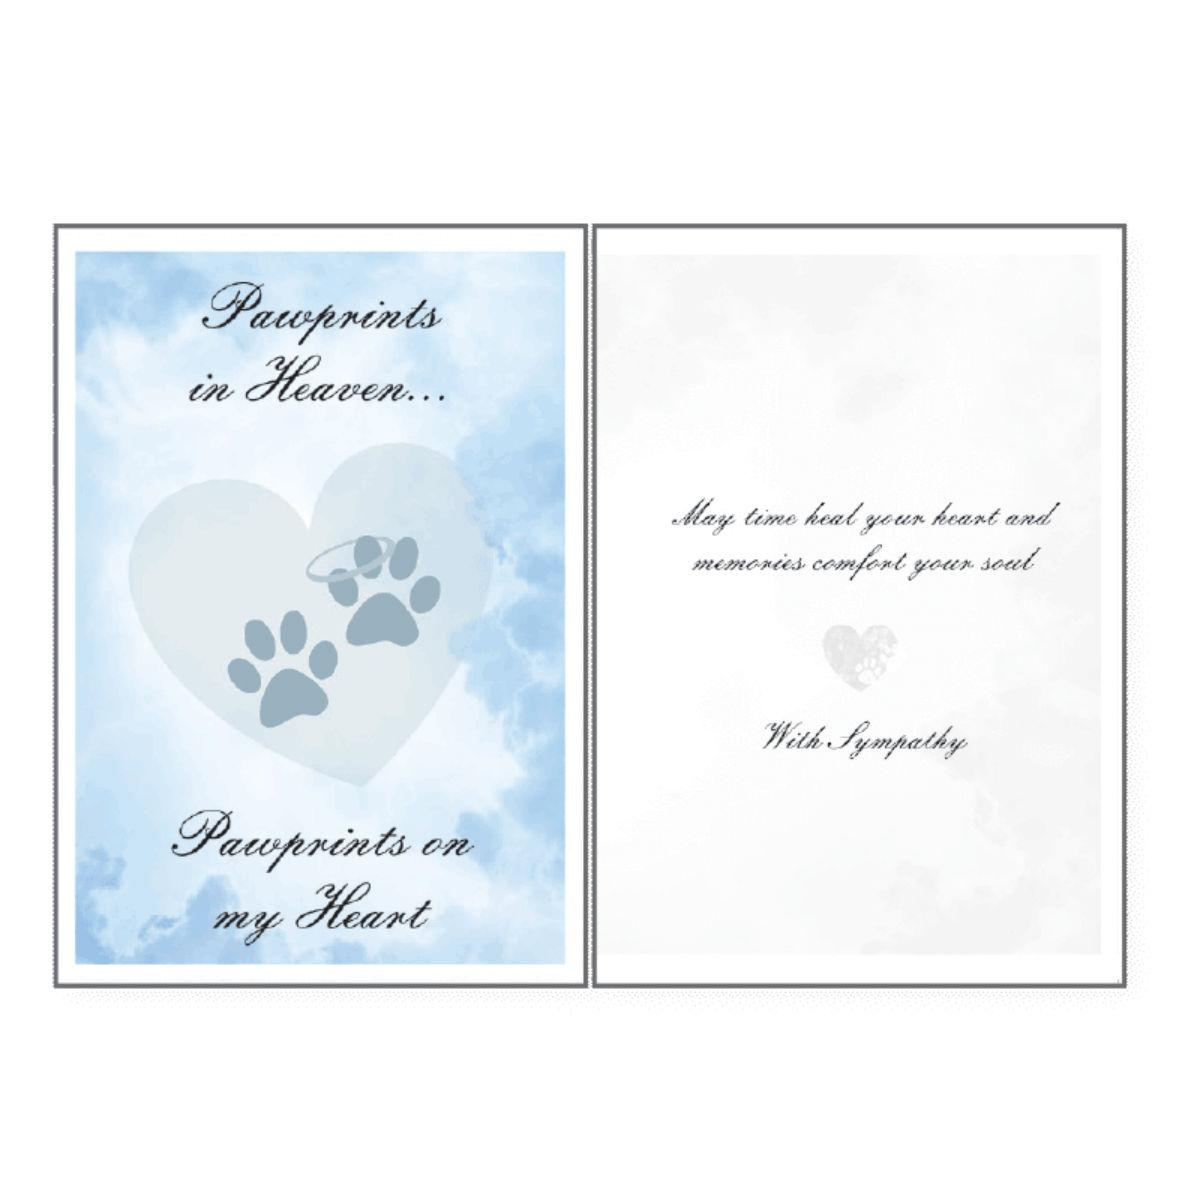 Sympathy Greeting Card by Dog Speak - Paw Prints in Heaven